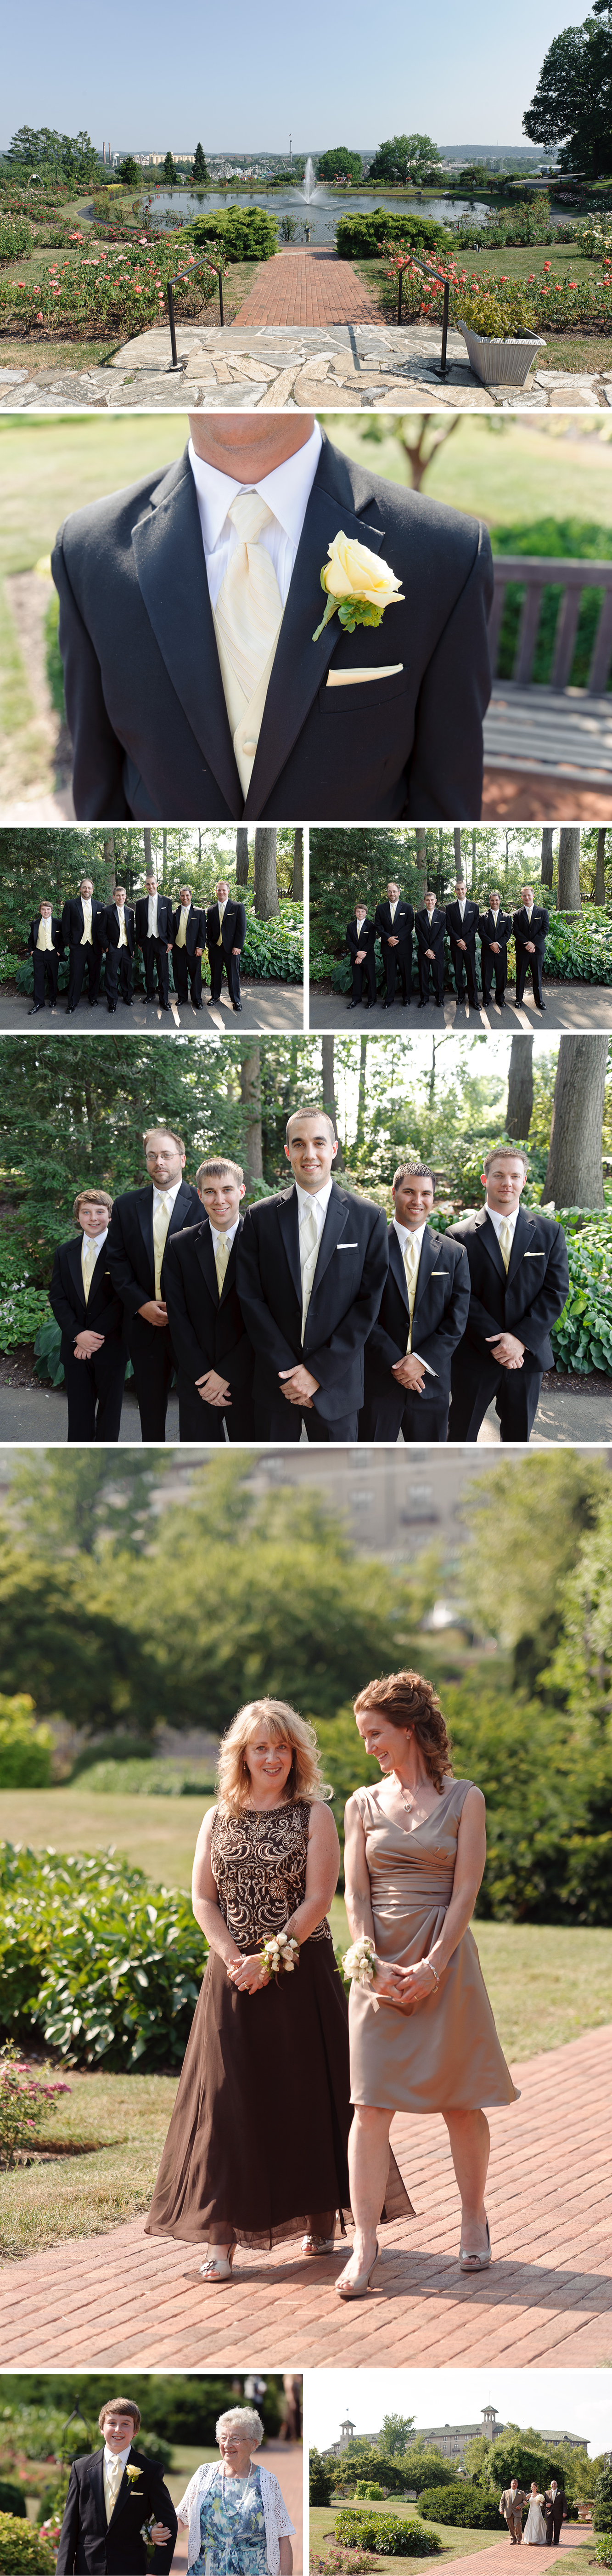 Hershey Gardens Wedding Photography by Jeremy Bischoff Photography